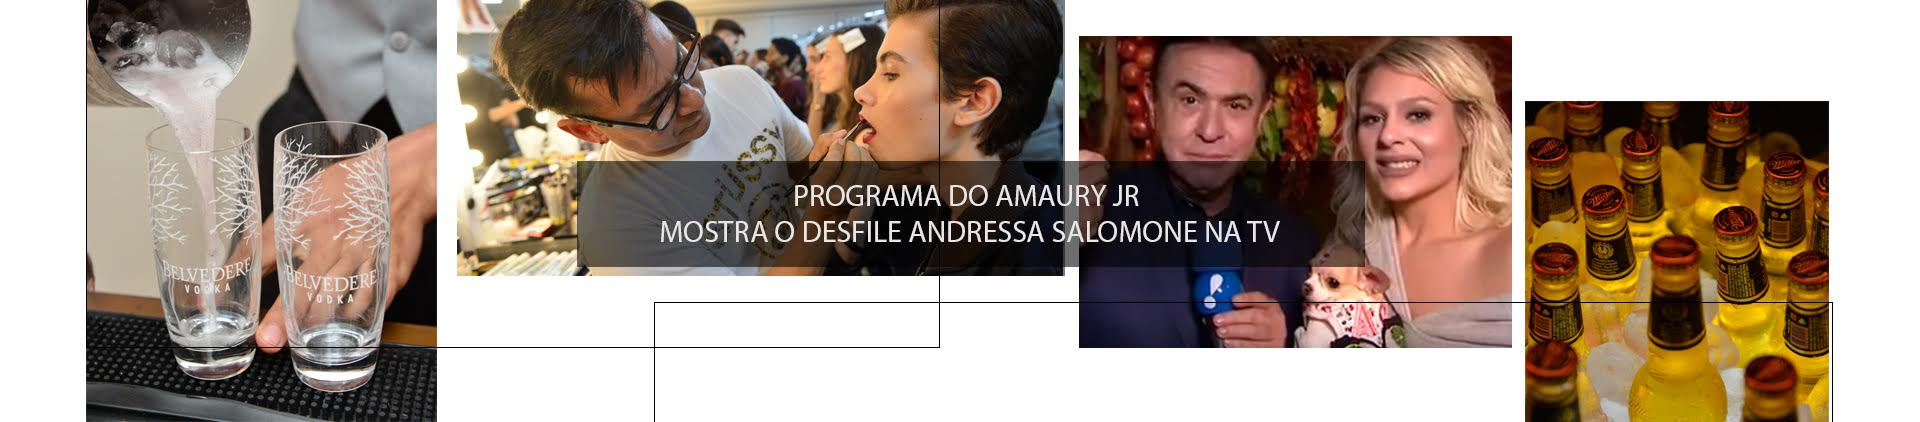 PROGRAMA DO AMAURY JR MOSTRA DESFILE ANDRESSA SALOMONE NA TV